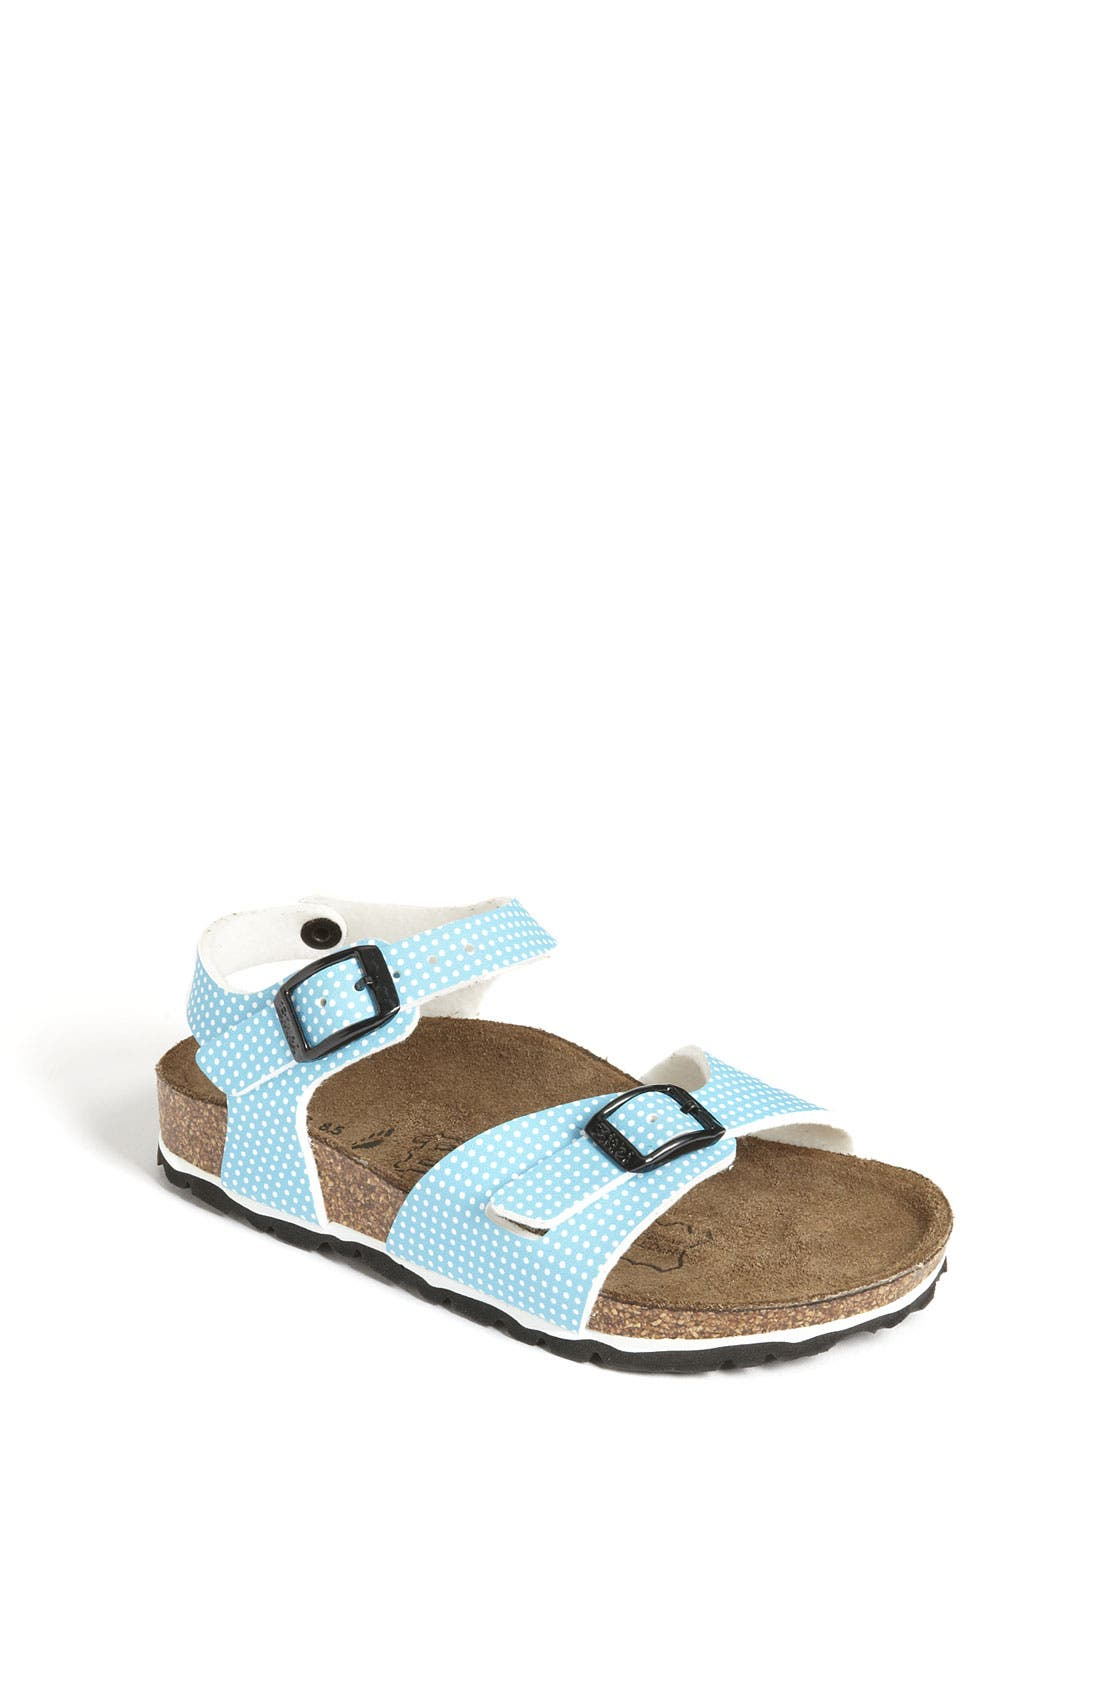 Alternate Image 1 Selected - Birki's® 'Tuvalu' Sandal (Toddler & Little Kid)